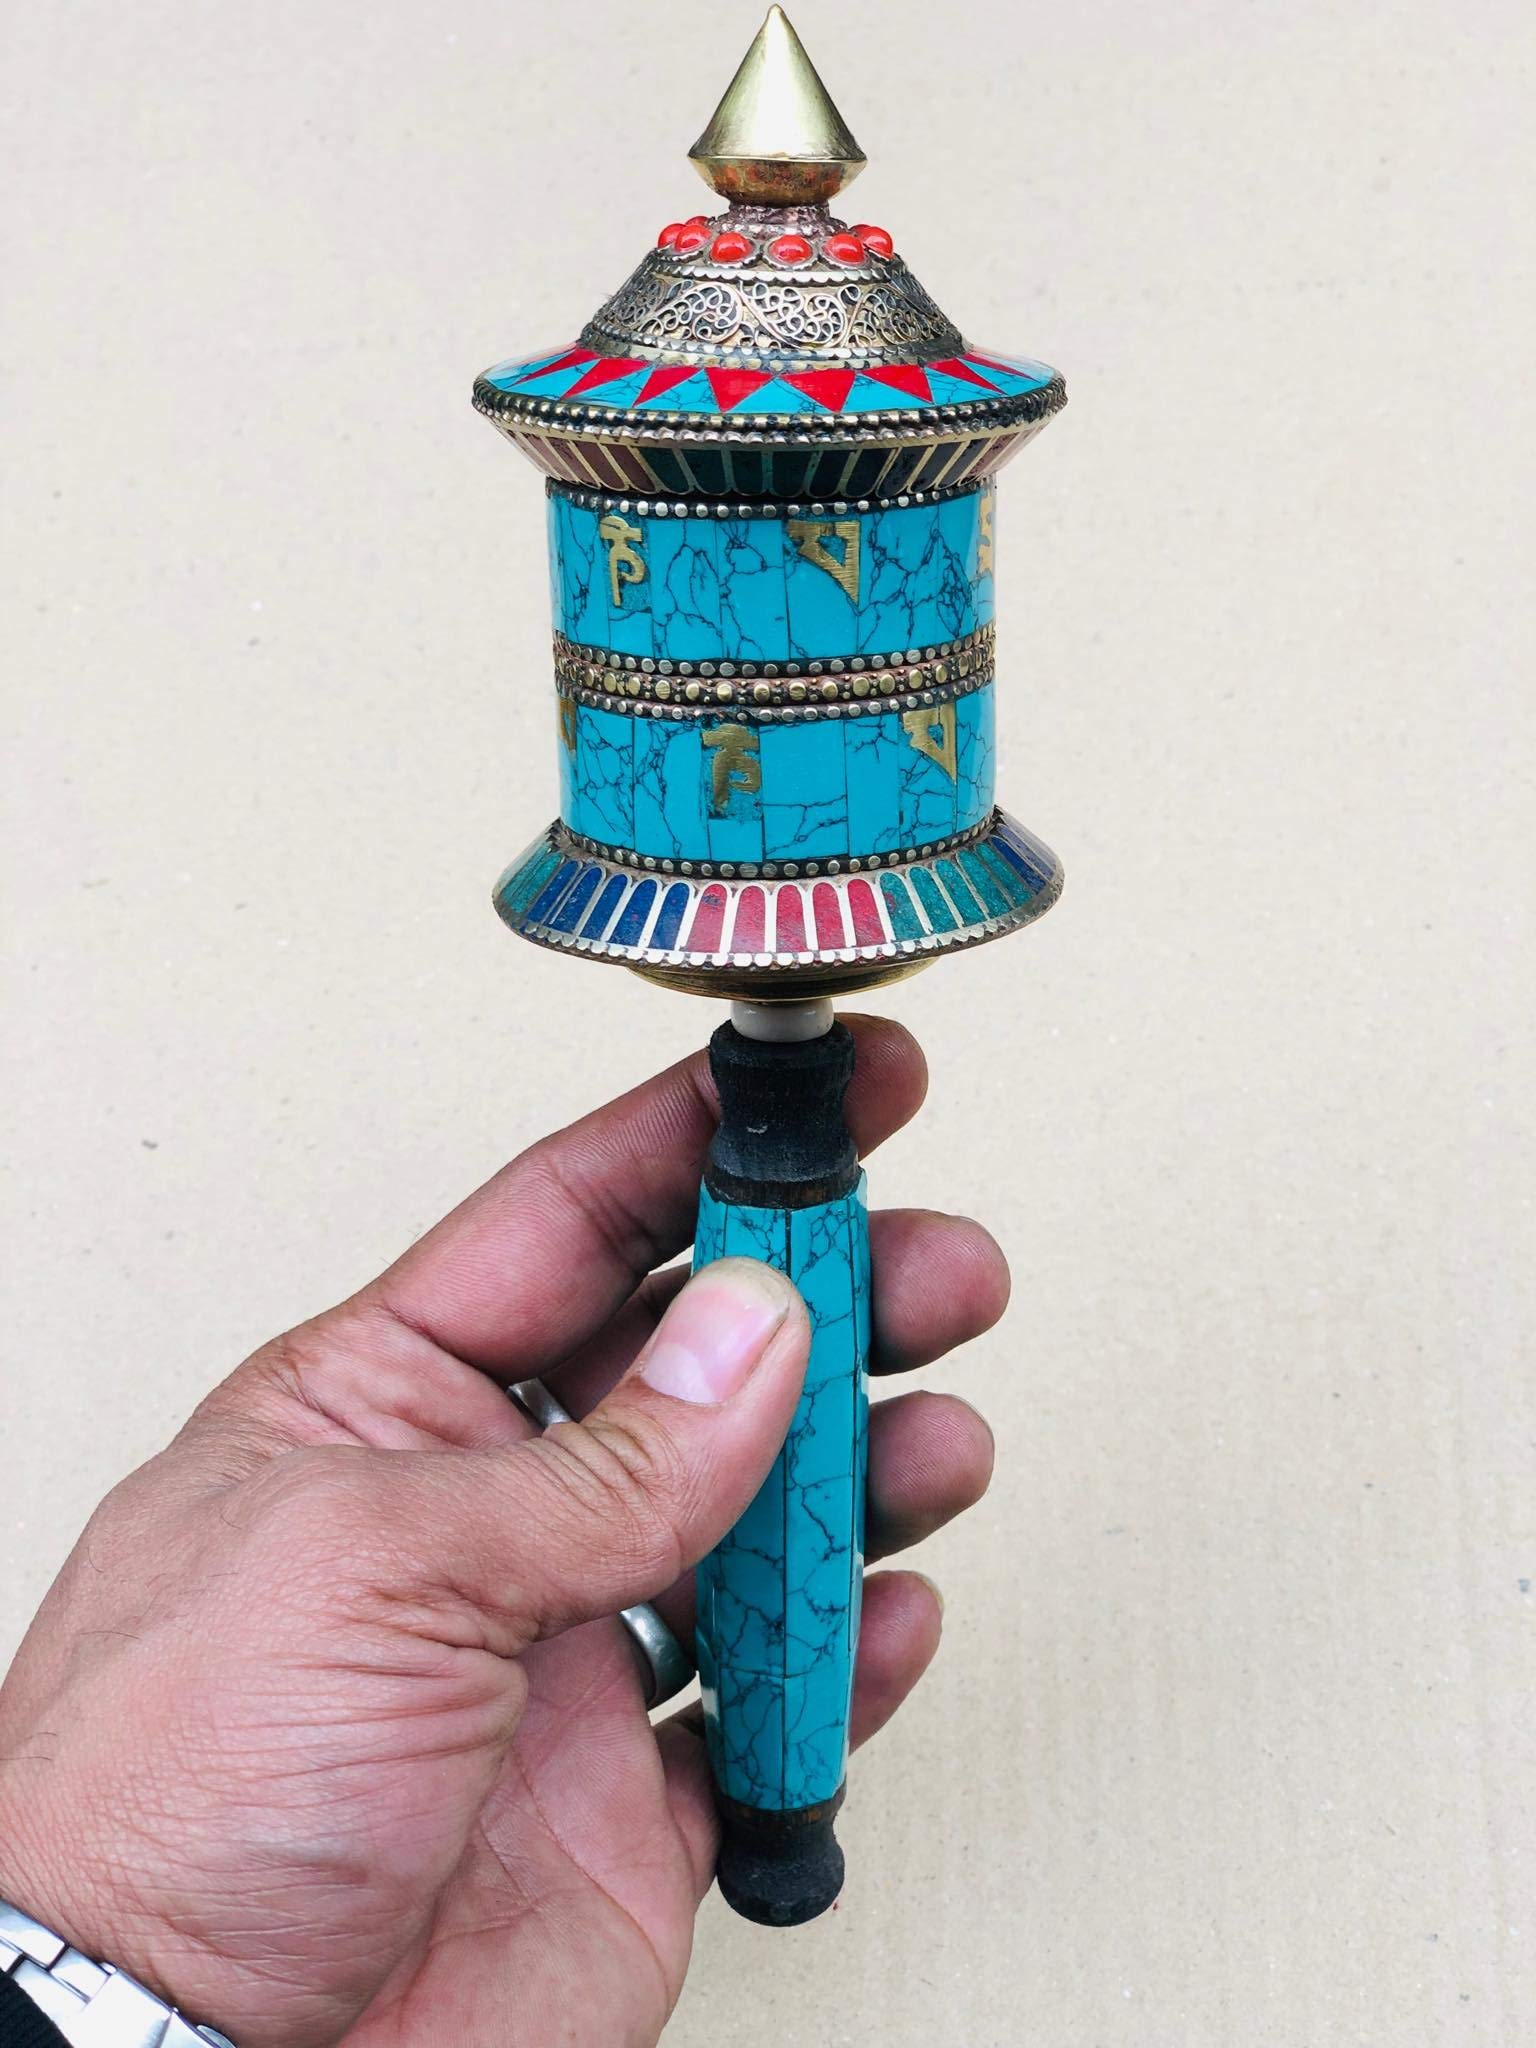 Buddhist Brass & Stone Set Hand-held Prayer Wheel - 9 Inch with Authentic Wooden Handle